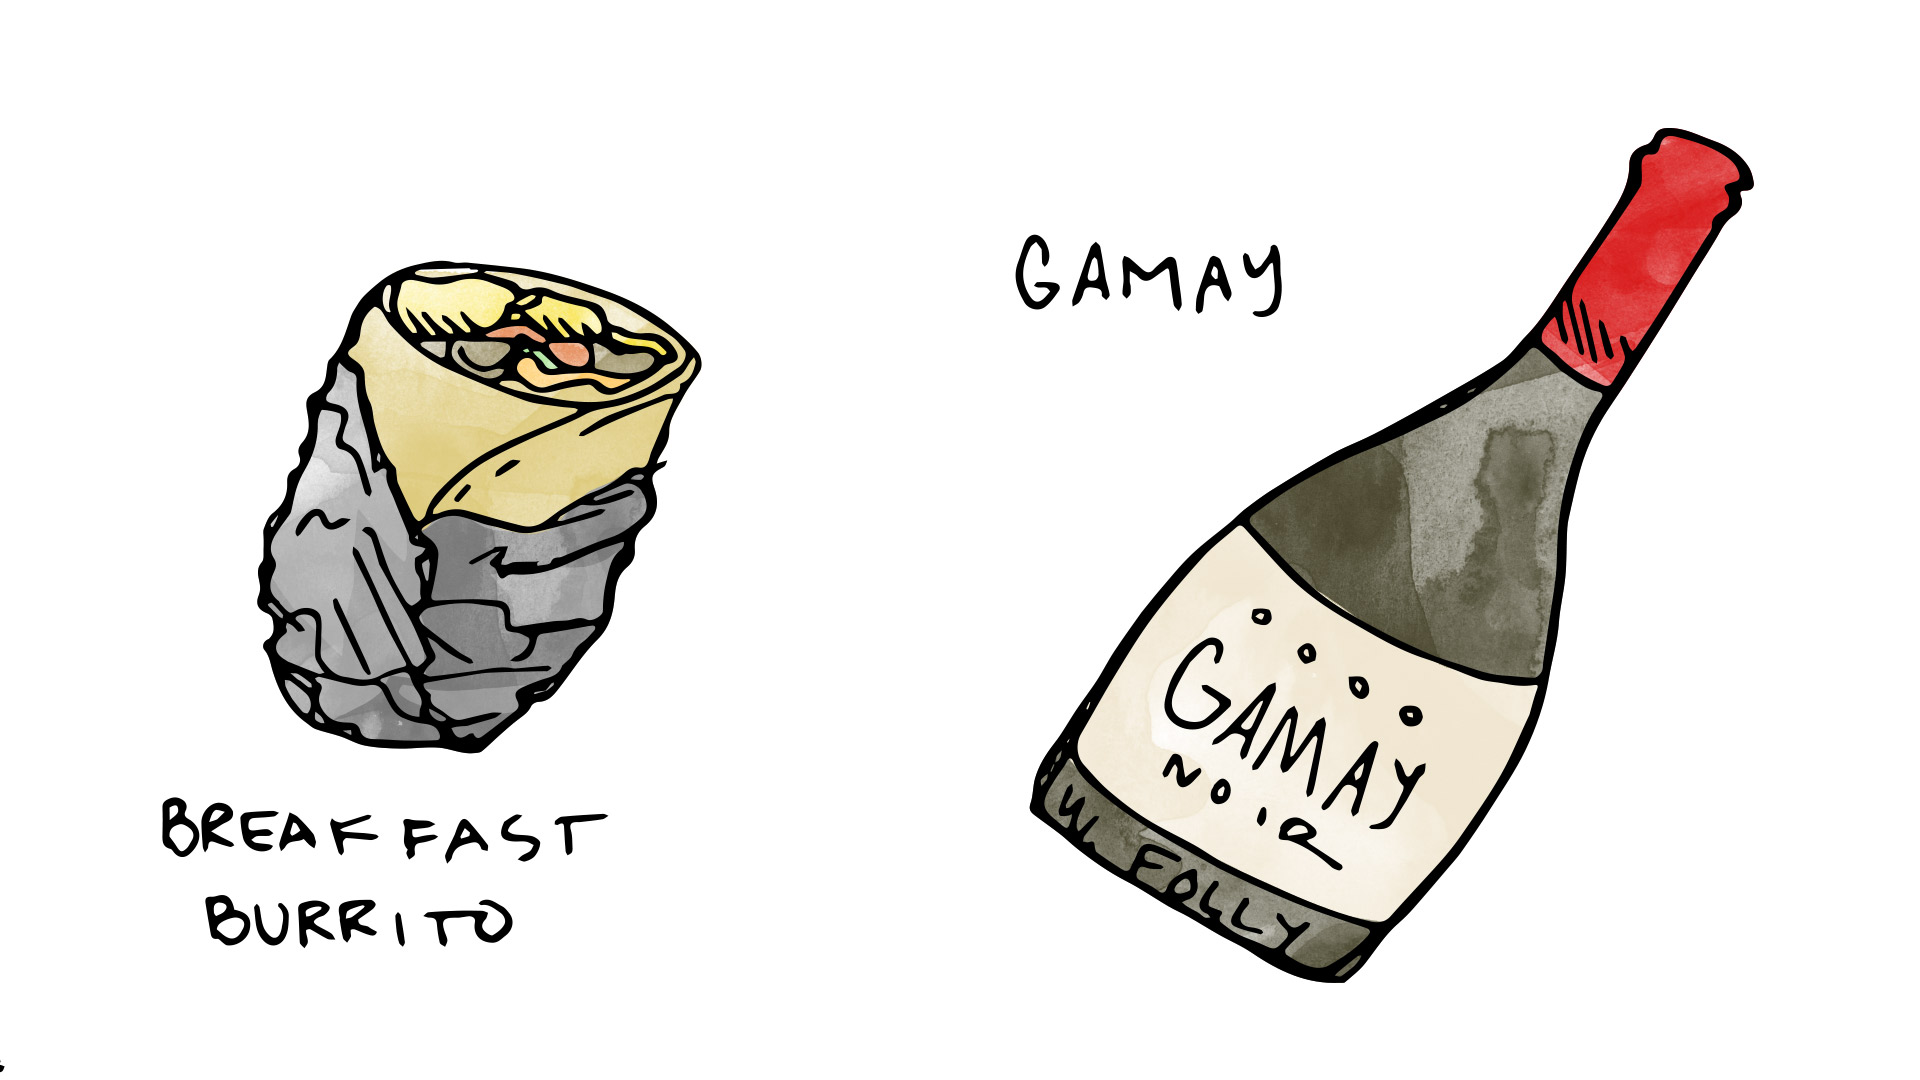 Breakfast burrito wine pairing with Gamay Noir illustration by Wine Folly